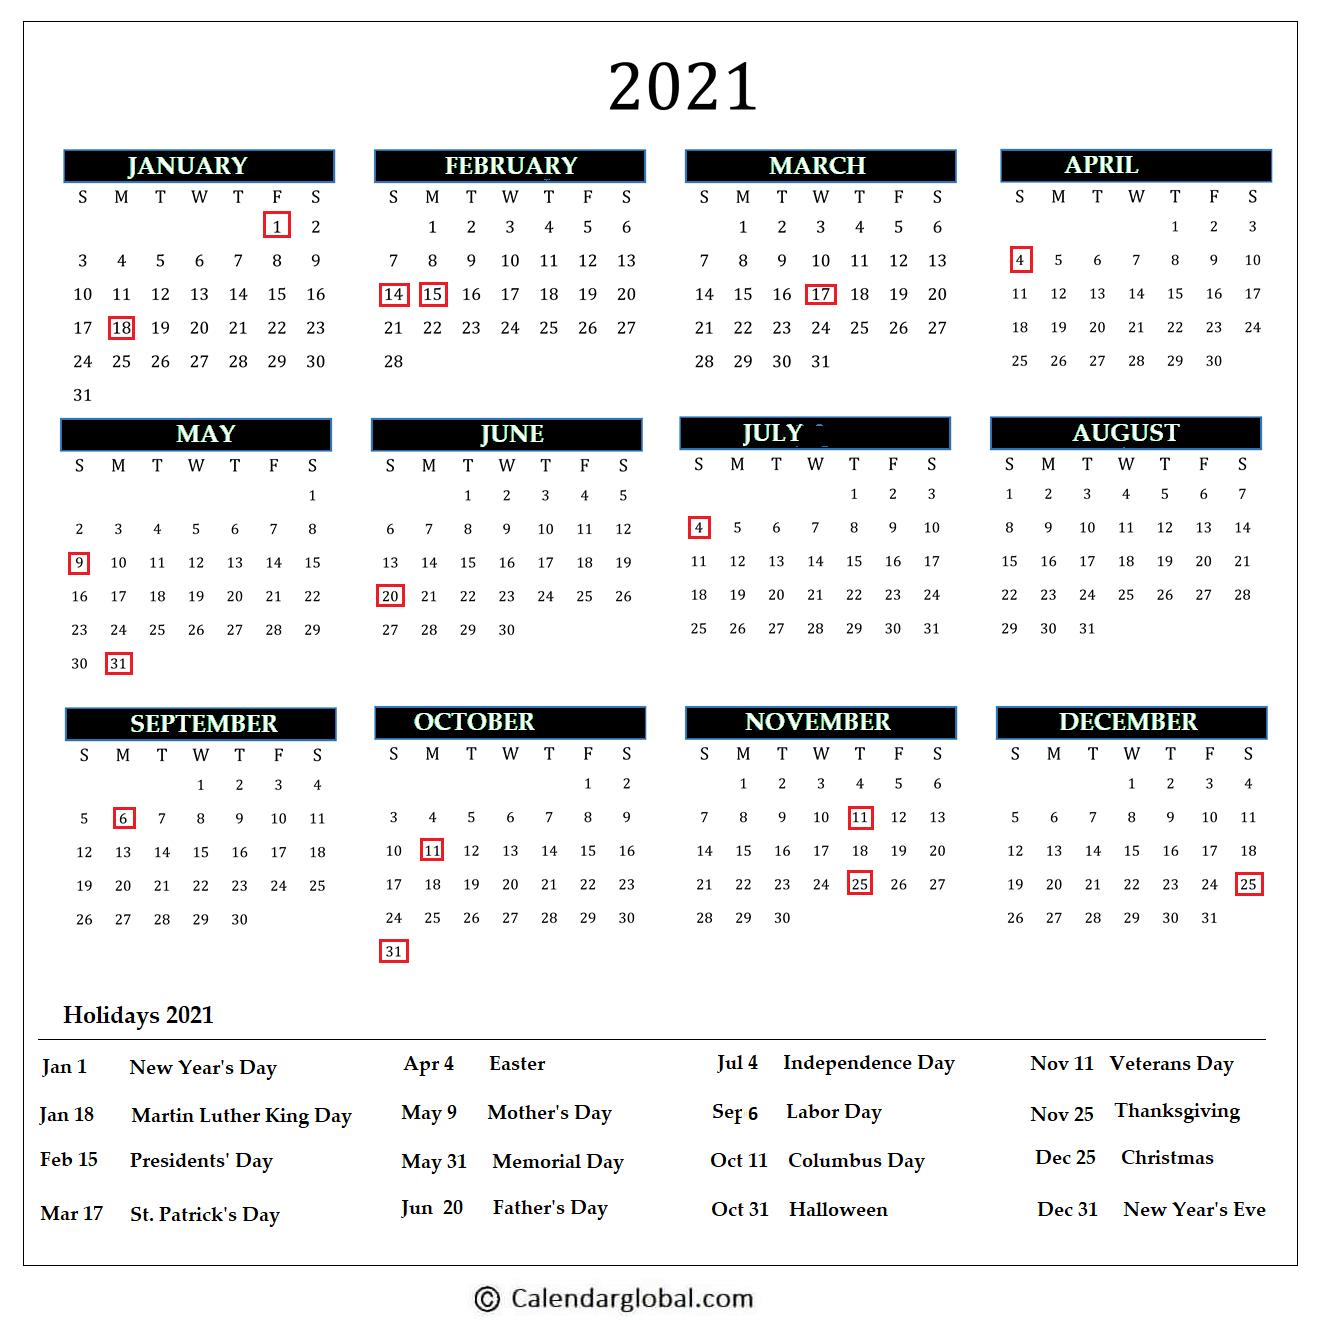 2021 Calendar Free Printable Yearly One Page Calendarglobal